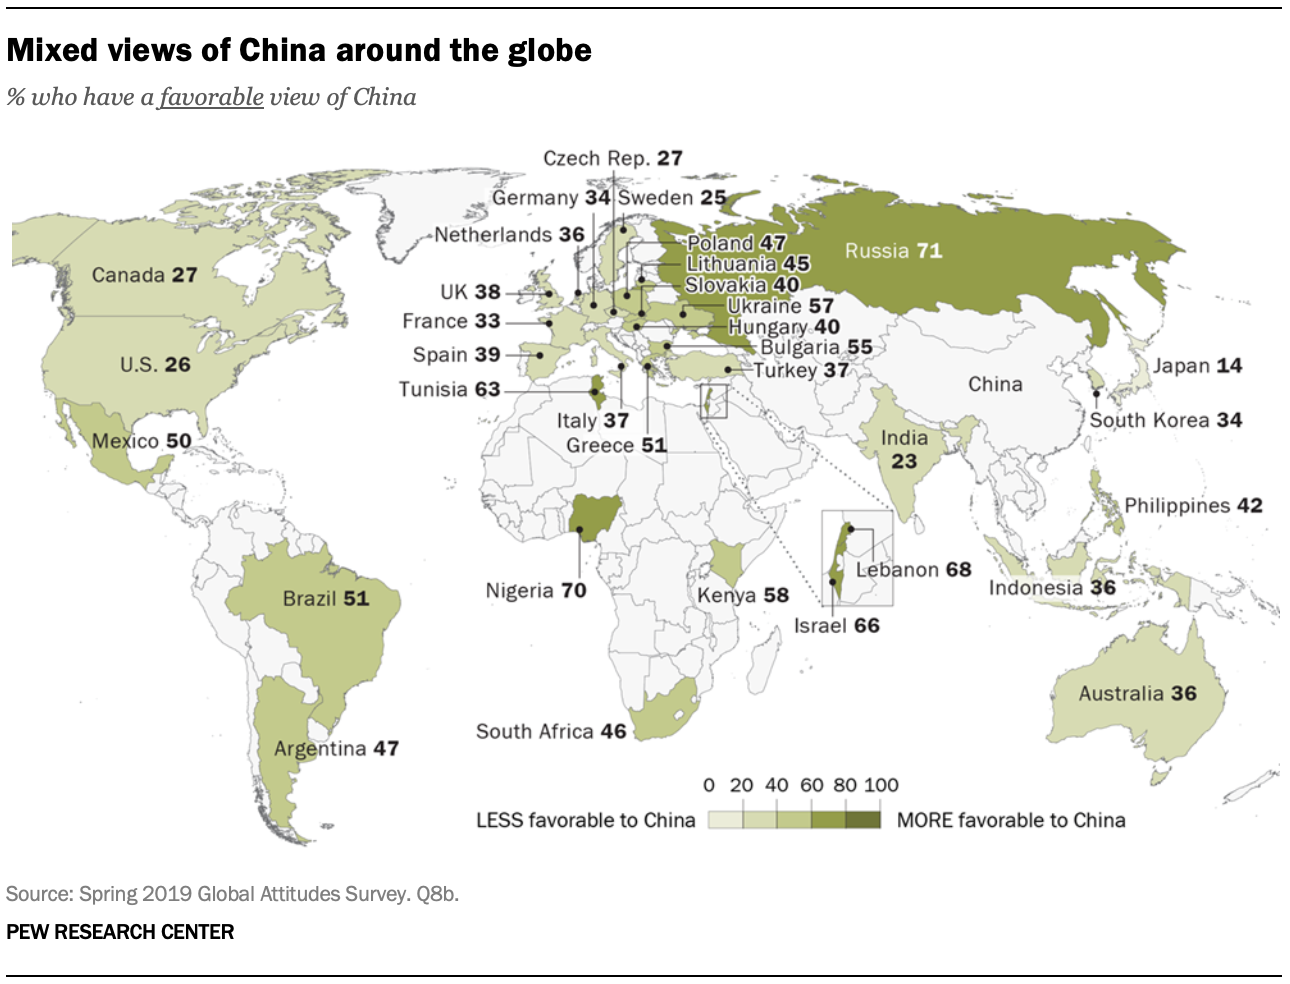 A map showing mixed views of China around the globe